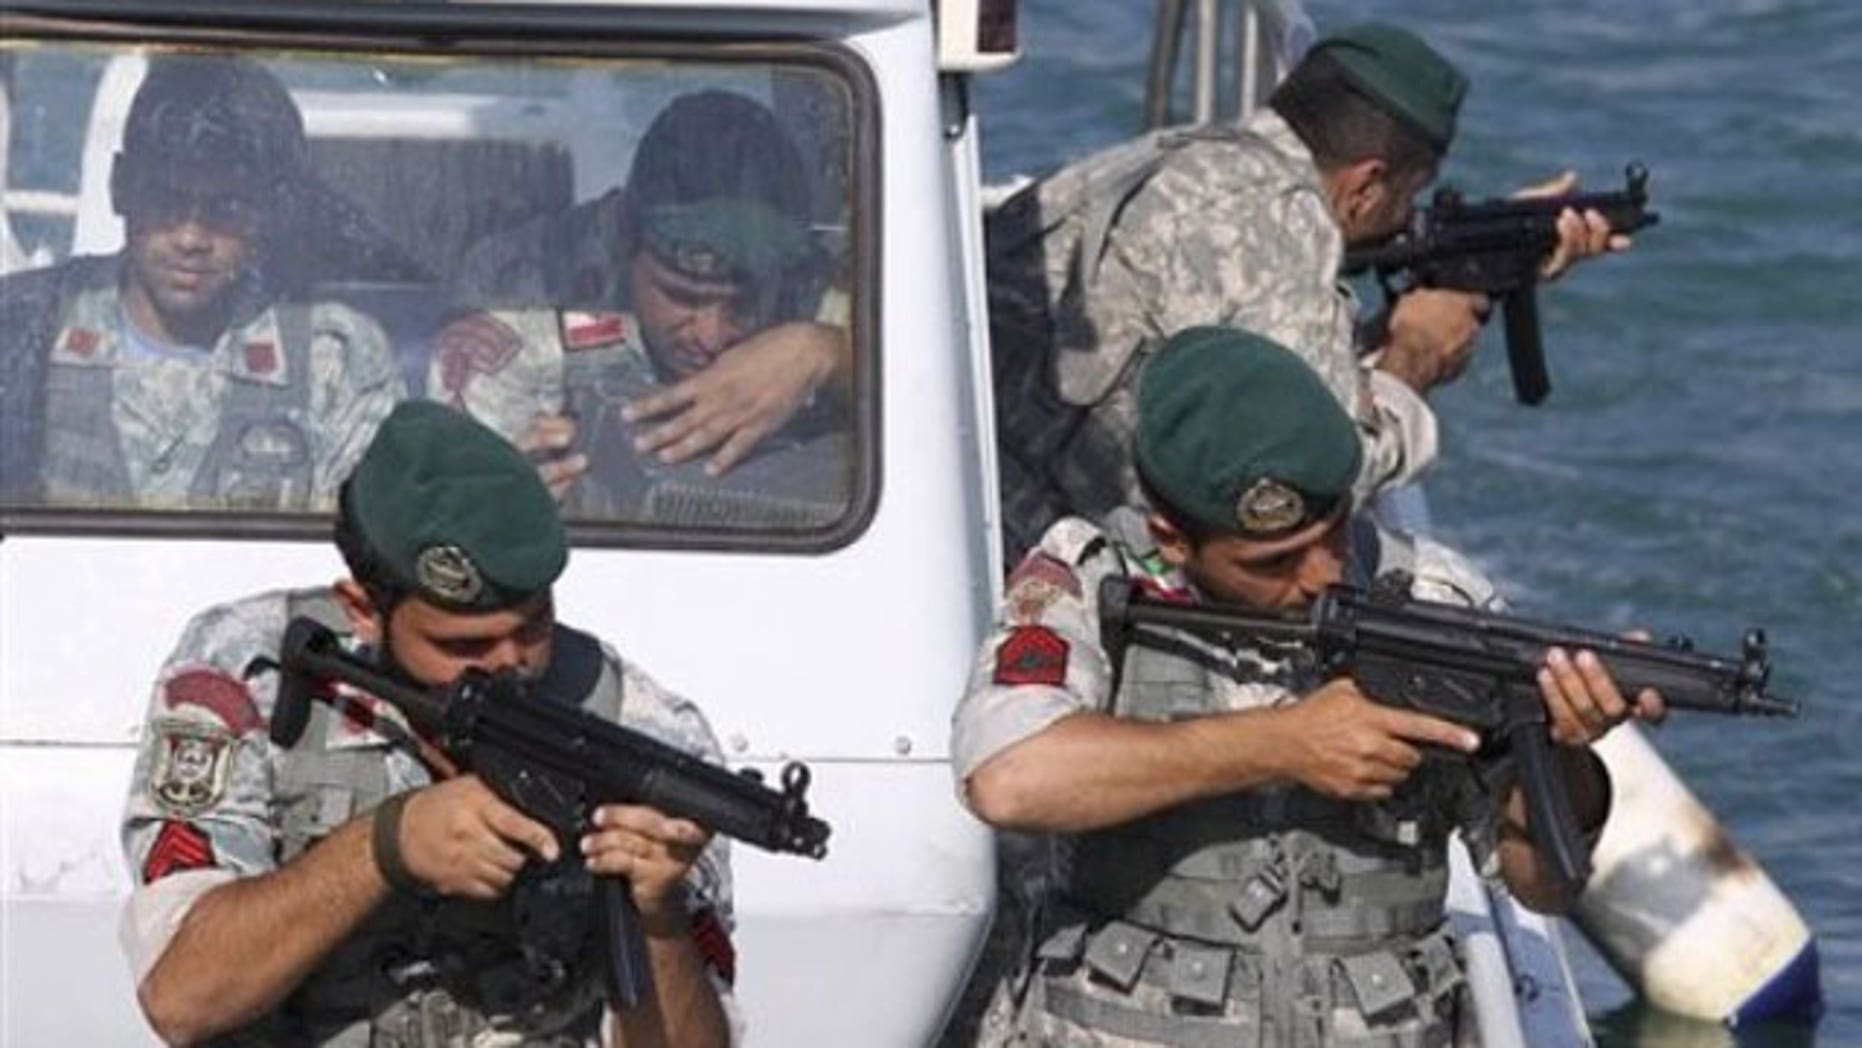 December 28, 2011: Iranian navy members take positions during a drill in the Sea of Oman.